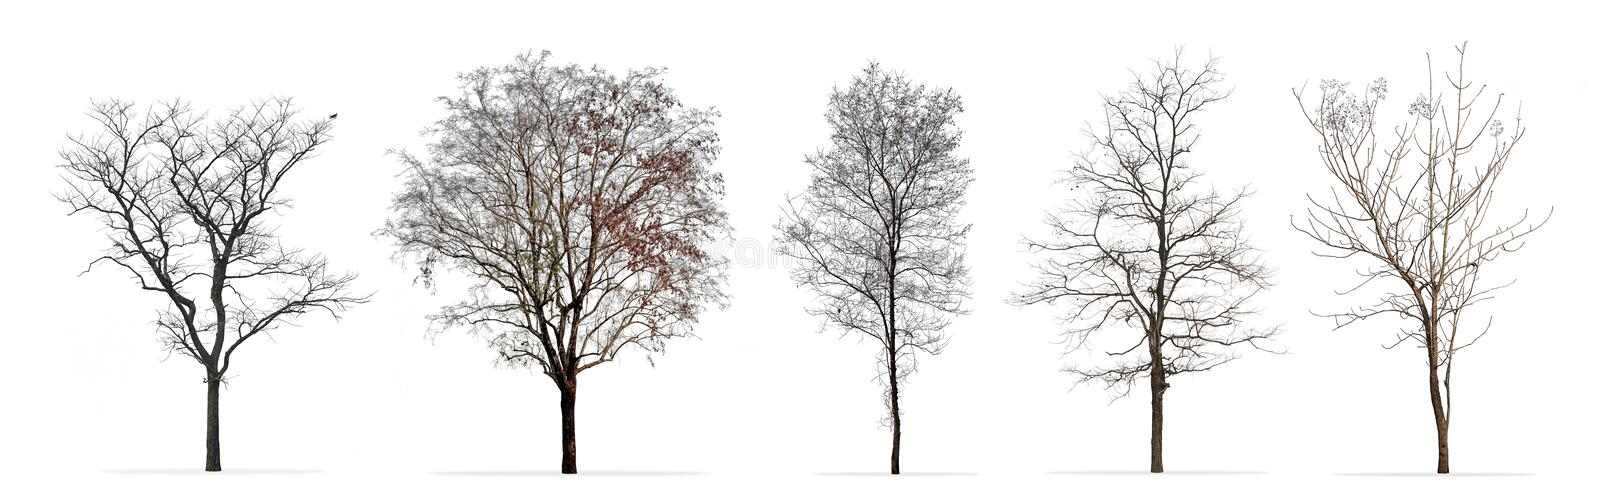 Set of winter trees without leaves isolated on white. Background stock photography